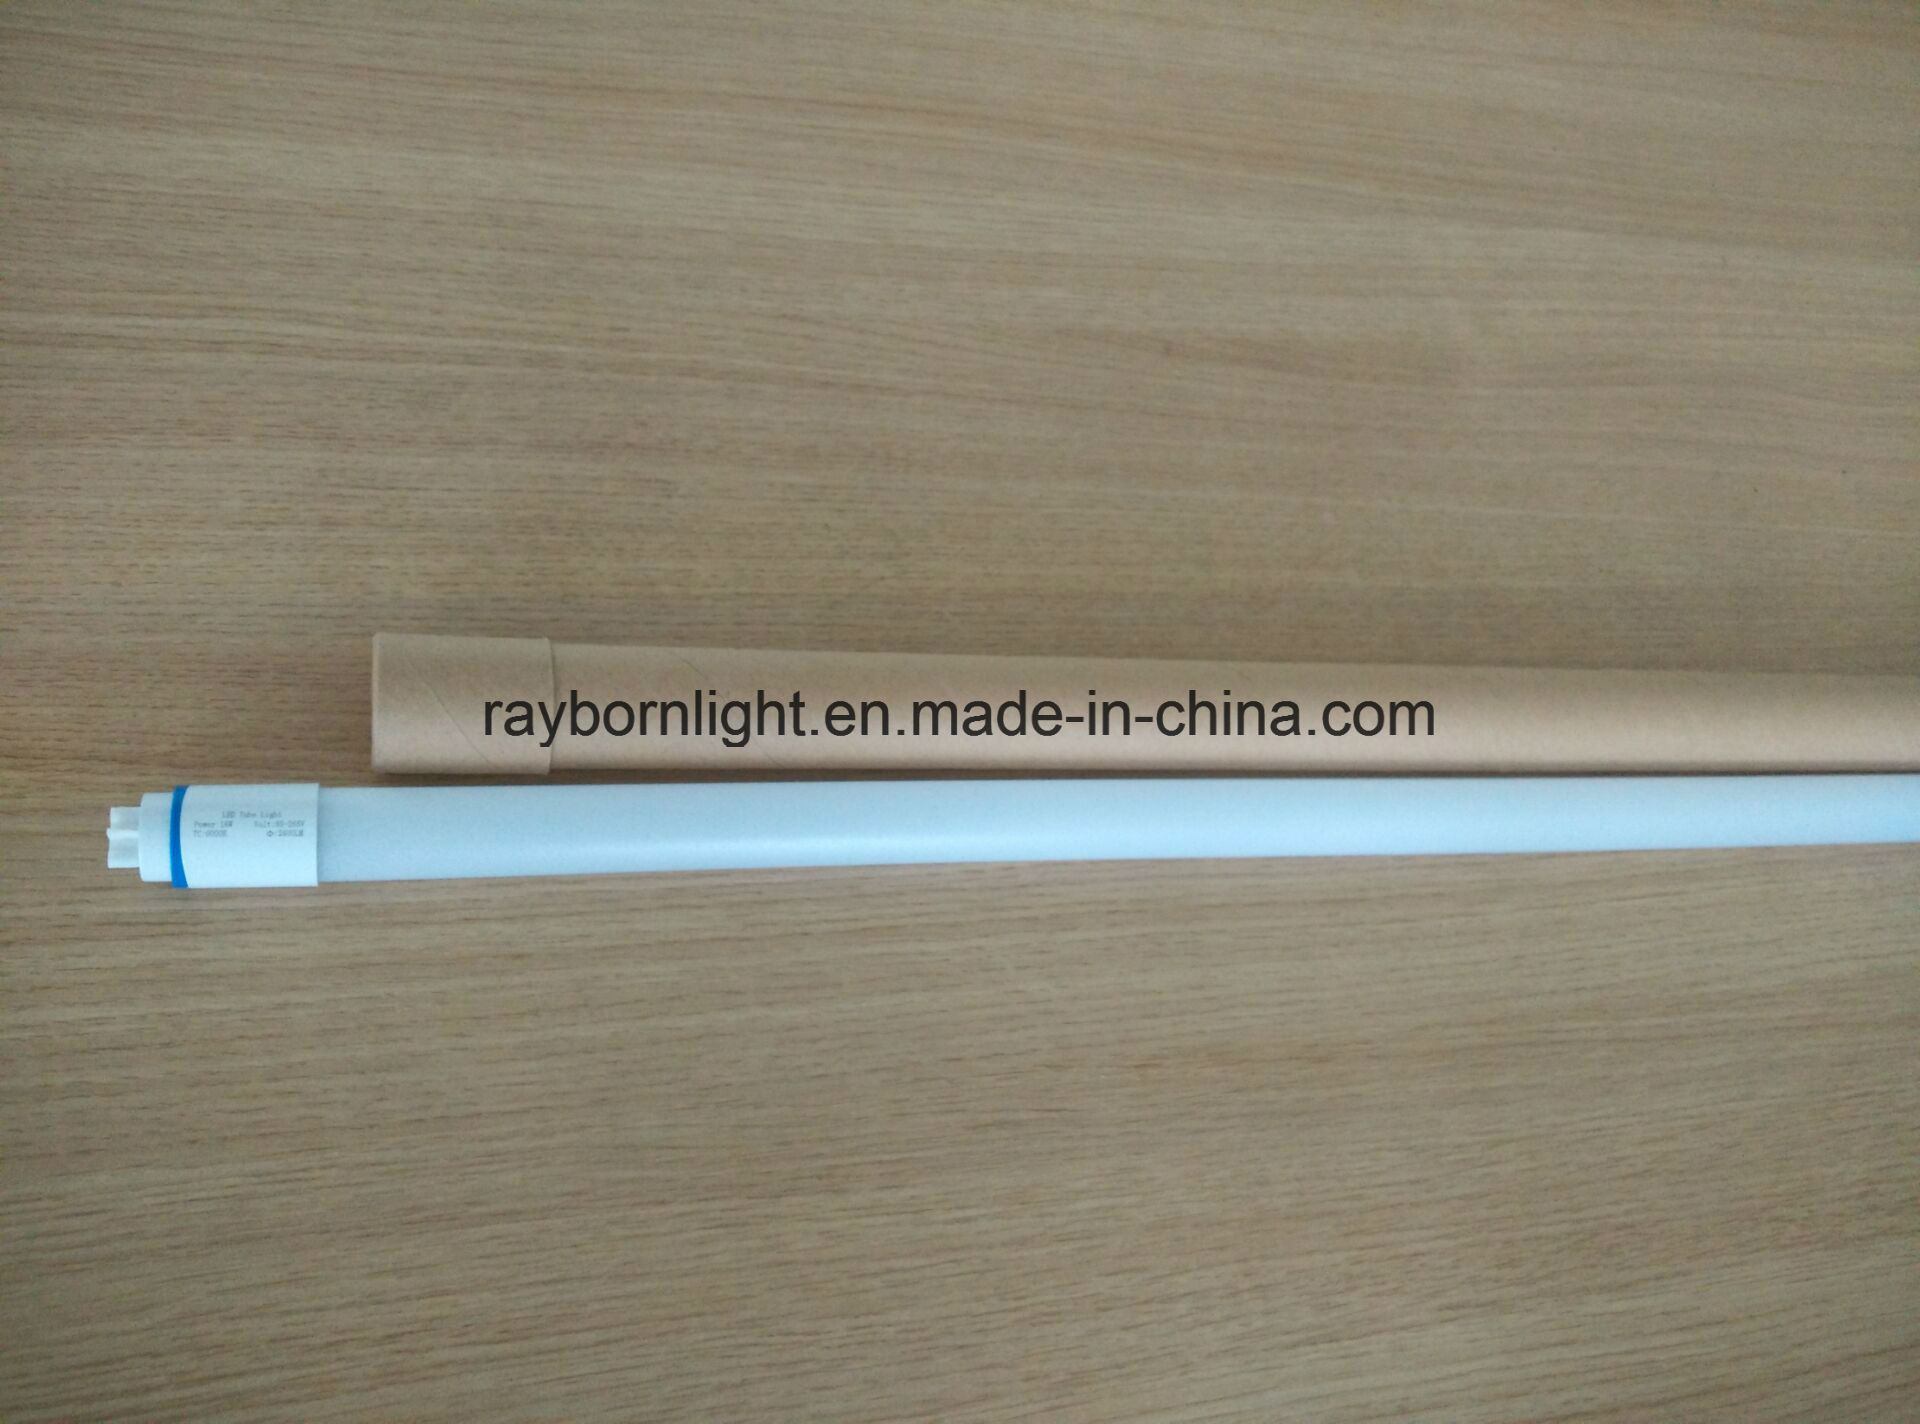 T8 LED Light Tube to Replace Conventional Fluorescent Tube